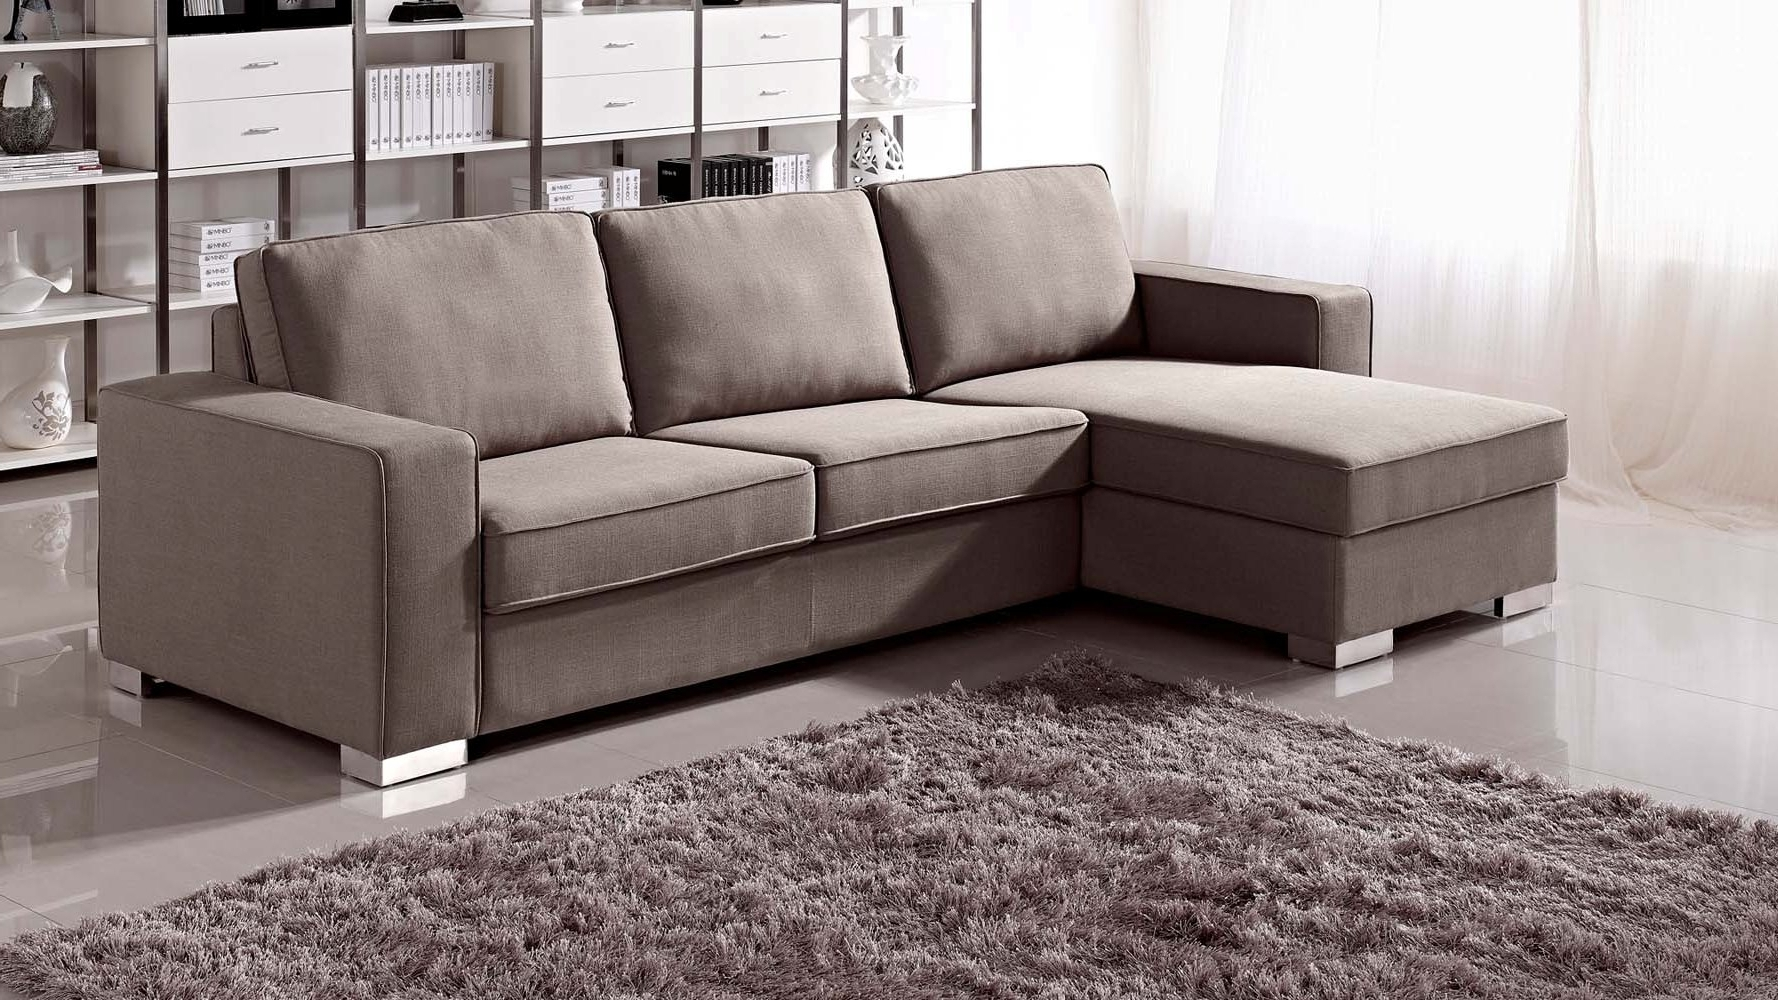 Innovative Sofa Sleeper Sectionals Beautiful Interior Design Style With Regard To Most Current Sectional Sofas With Queen Size Sleeper (View 4 of 20)